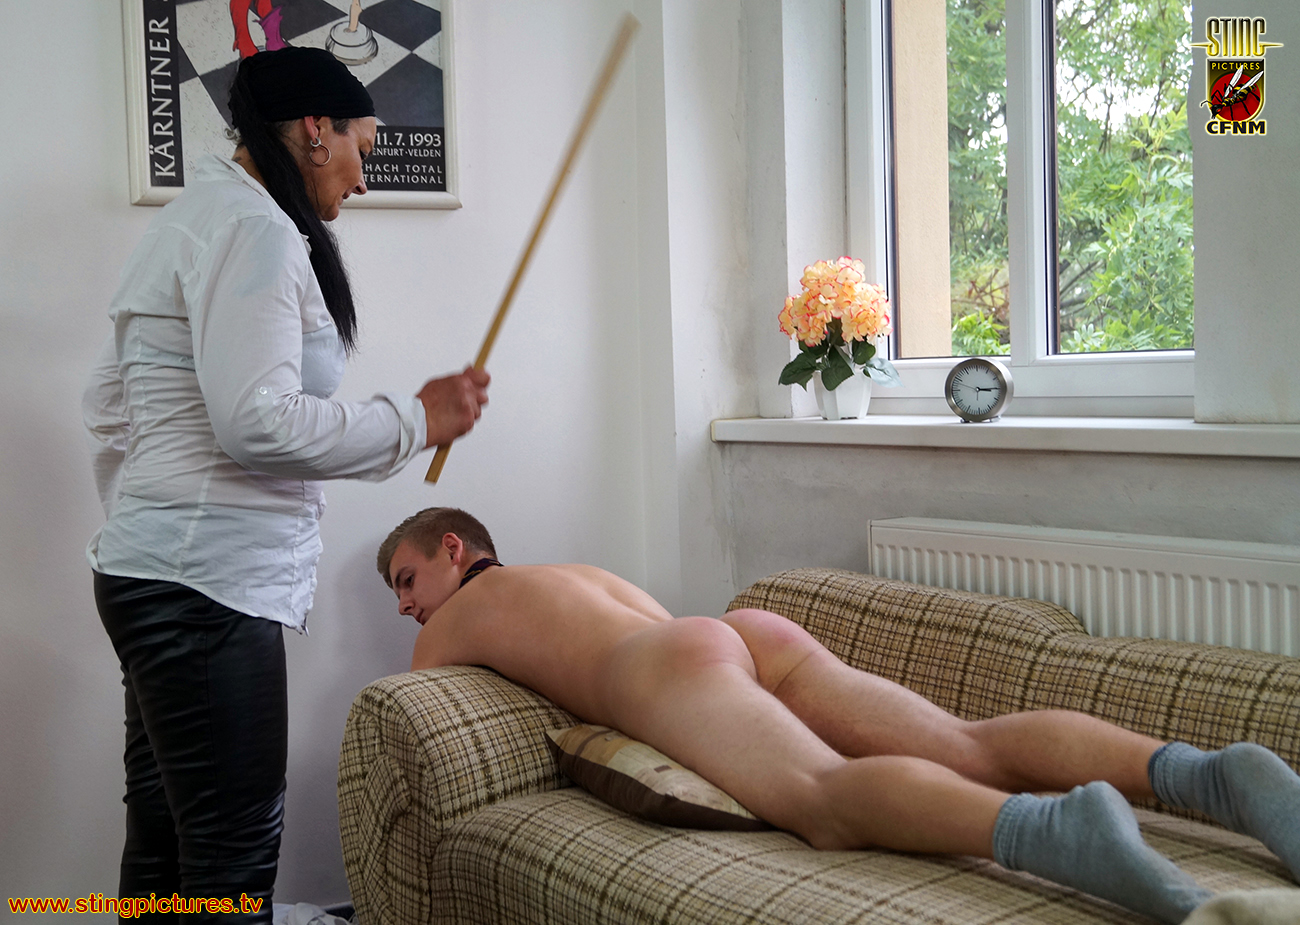 Male To Male Spanking Contacts